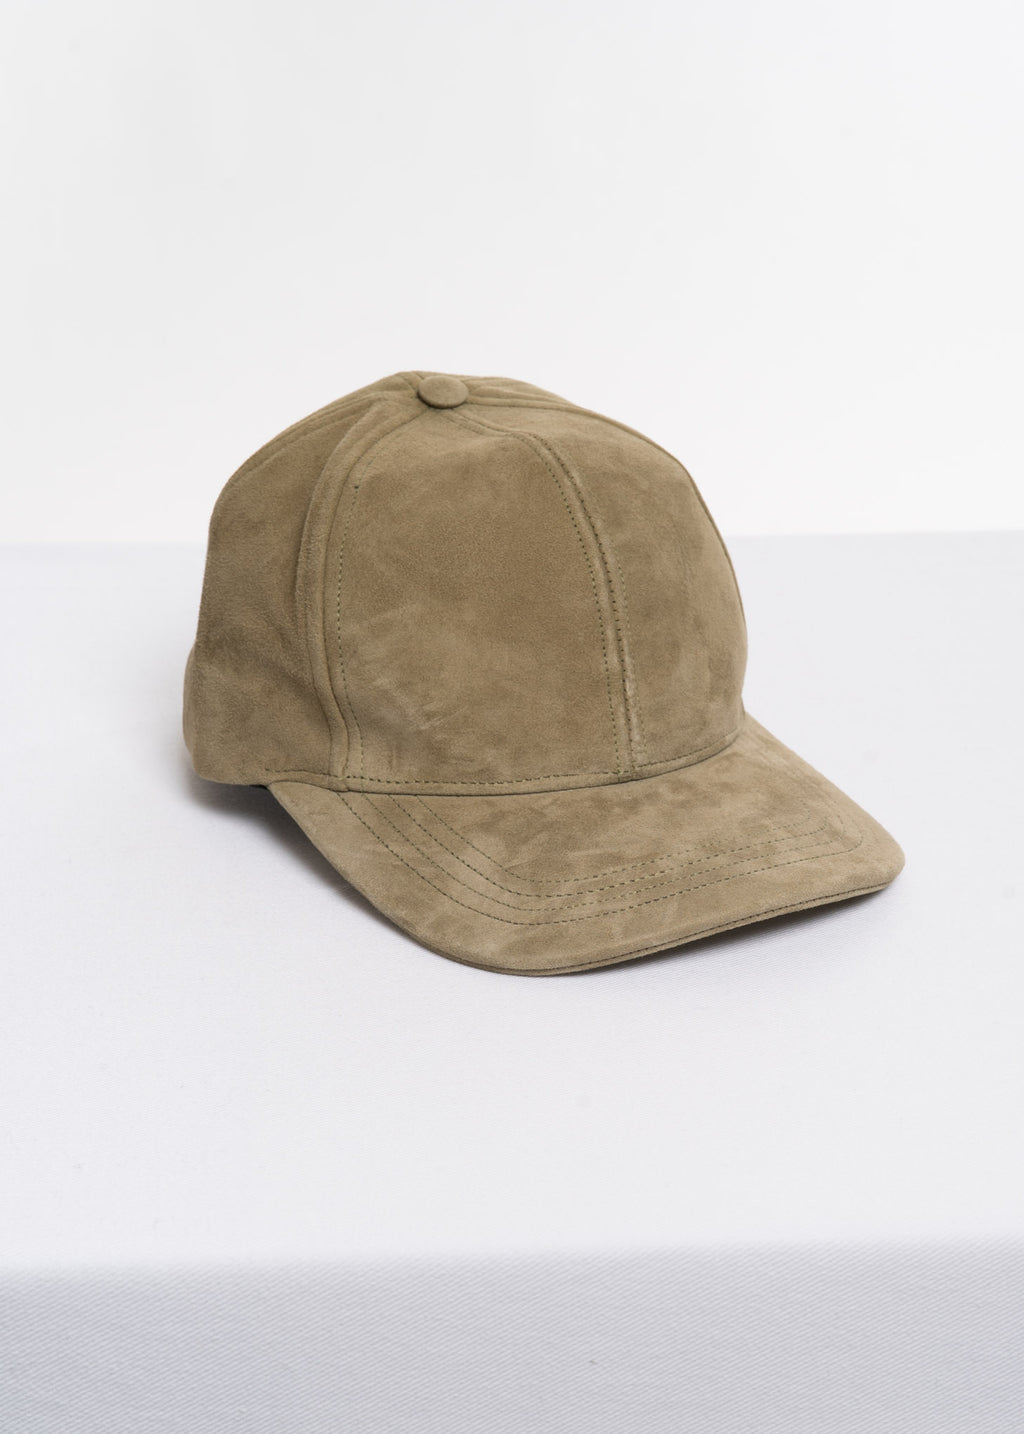 Moss Green Cadi Leather Cap